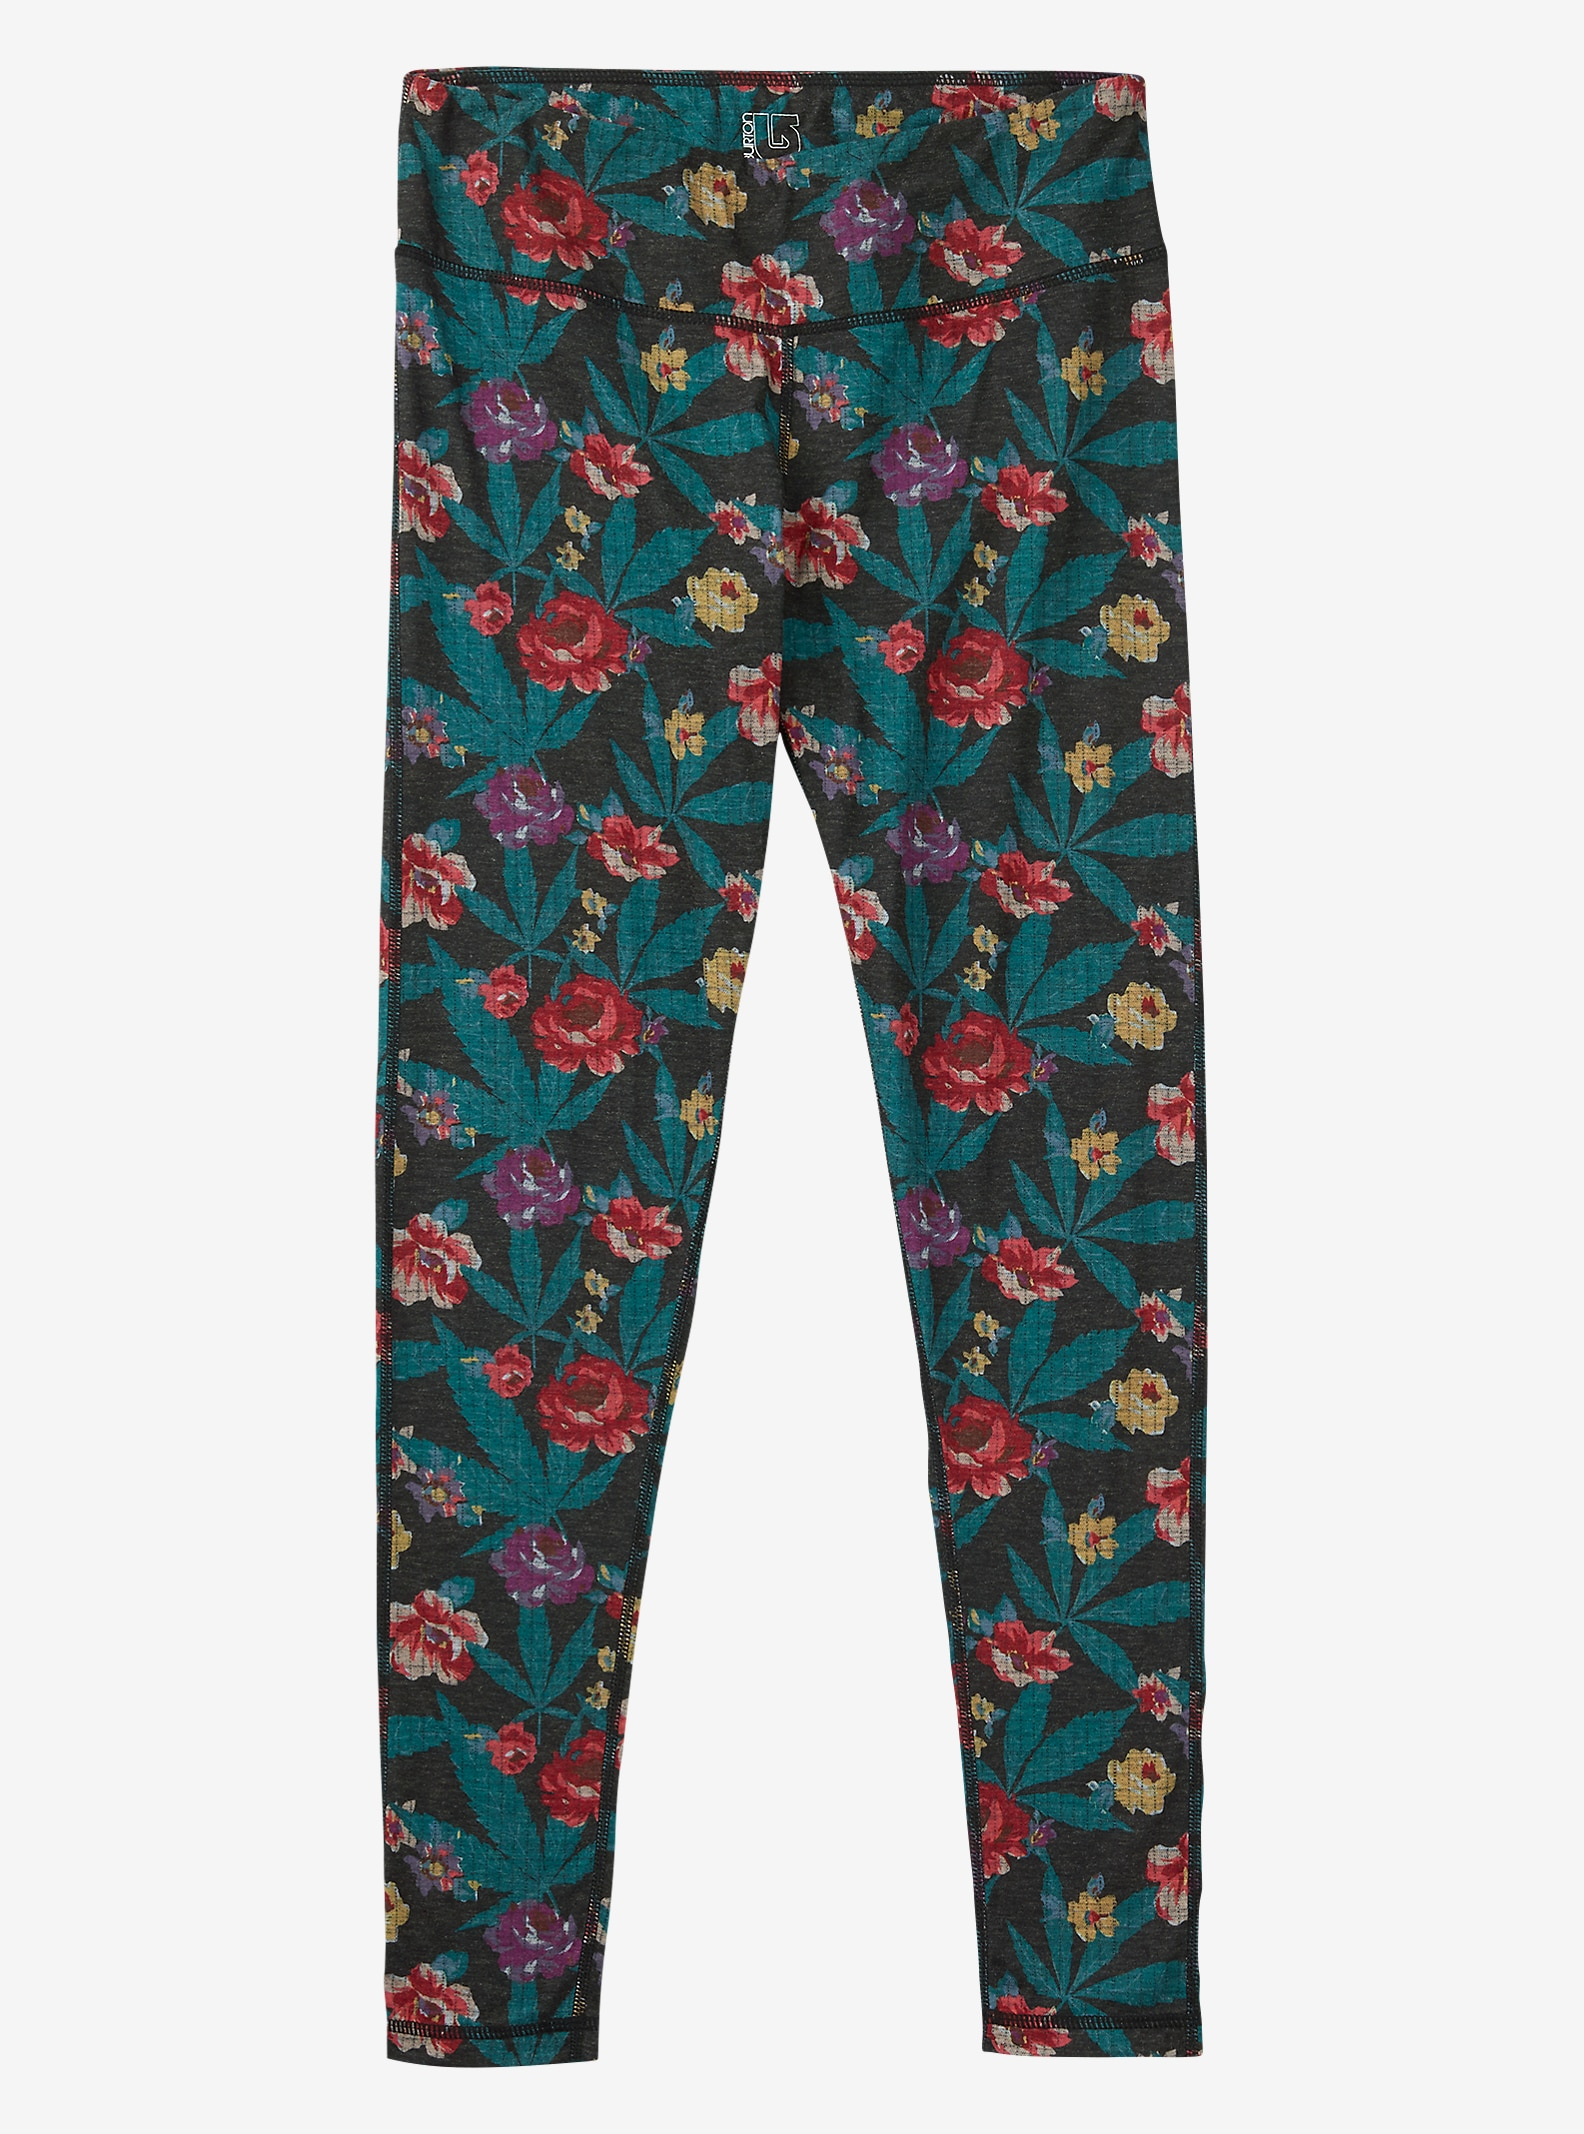 Burton Women's Midweight Base Layer Wool Pant shown in Ganja Rose